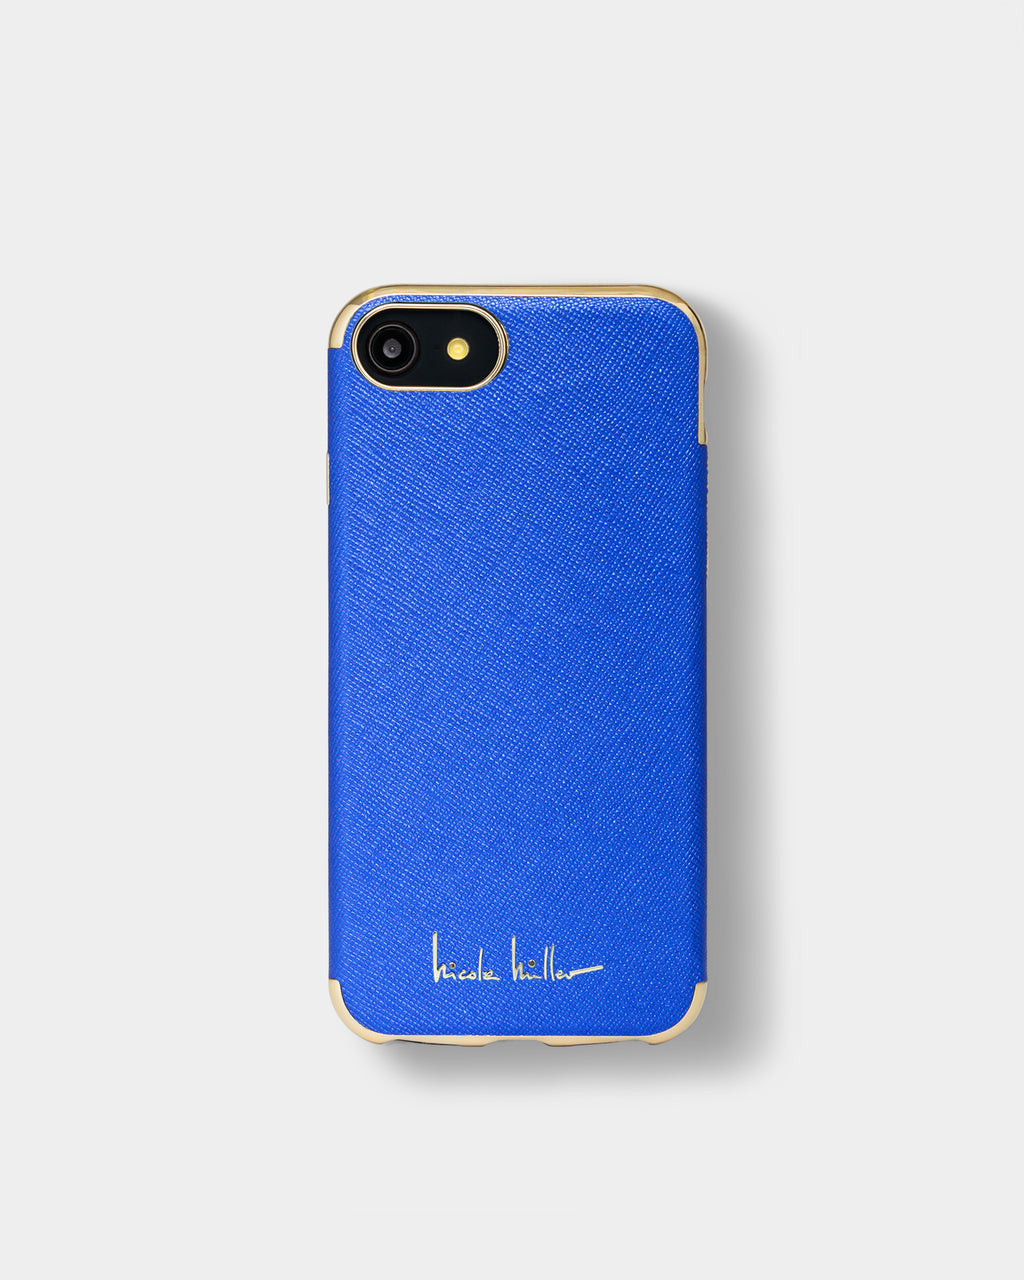 CHBLG01 - IPHONE CROSSHATCH 6/6s/7/8 case - accessories - fashion tech - IN A BLUE CROSSHATCH, THIS HARDSHELL CASE IS A CLASSIC.